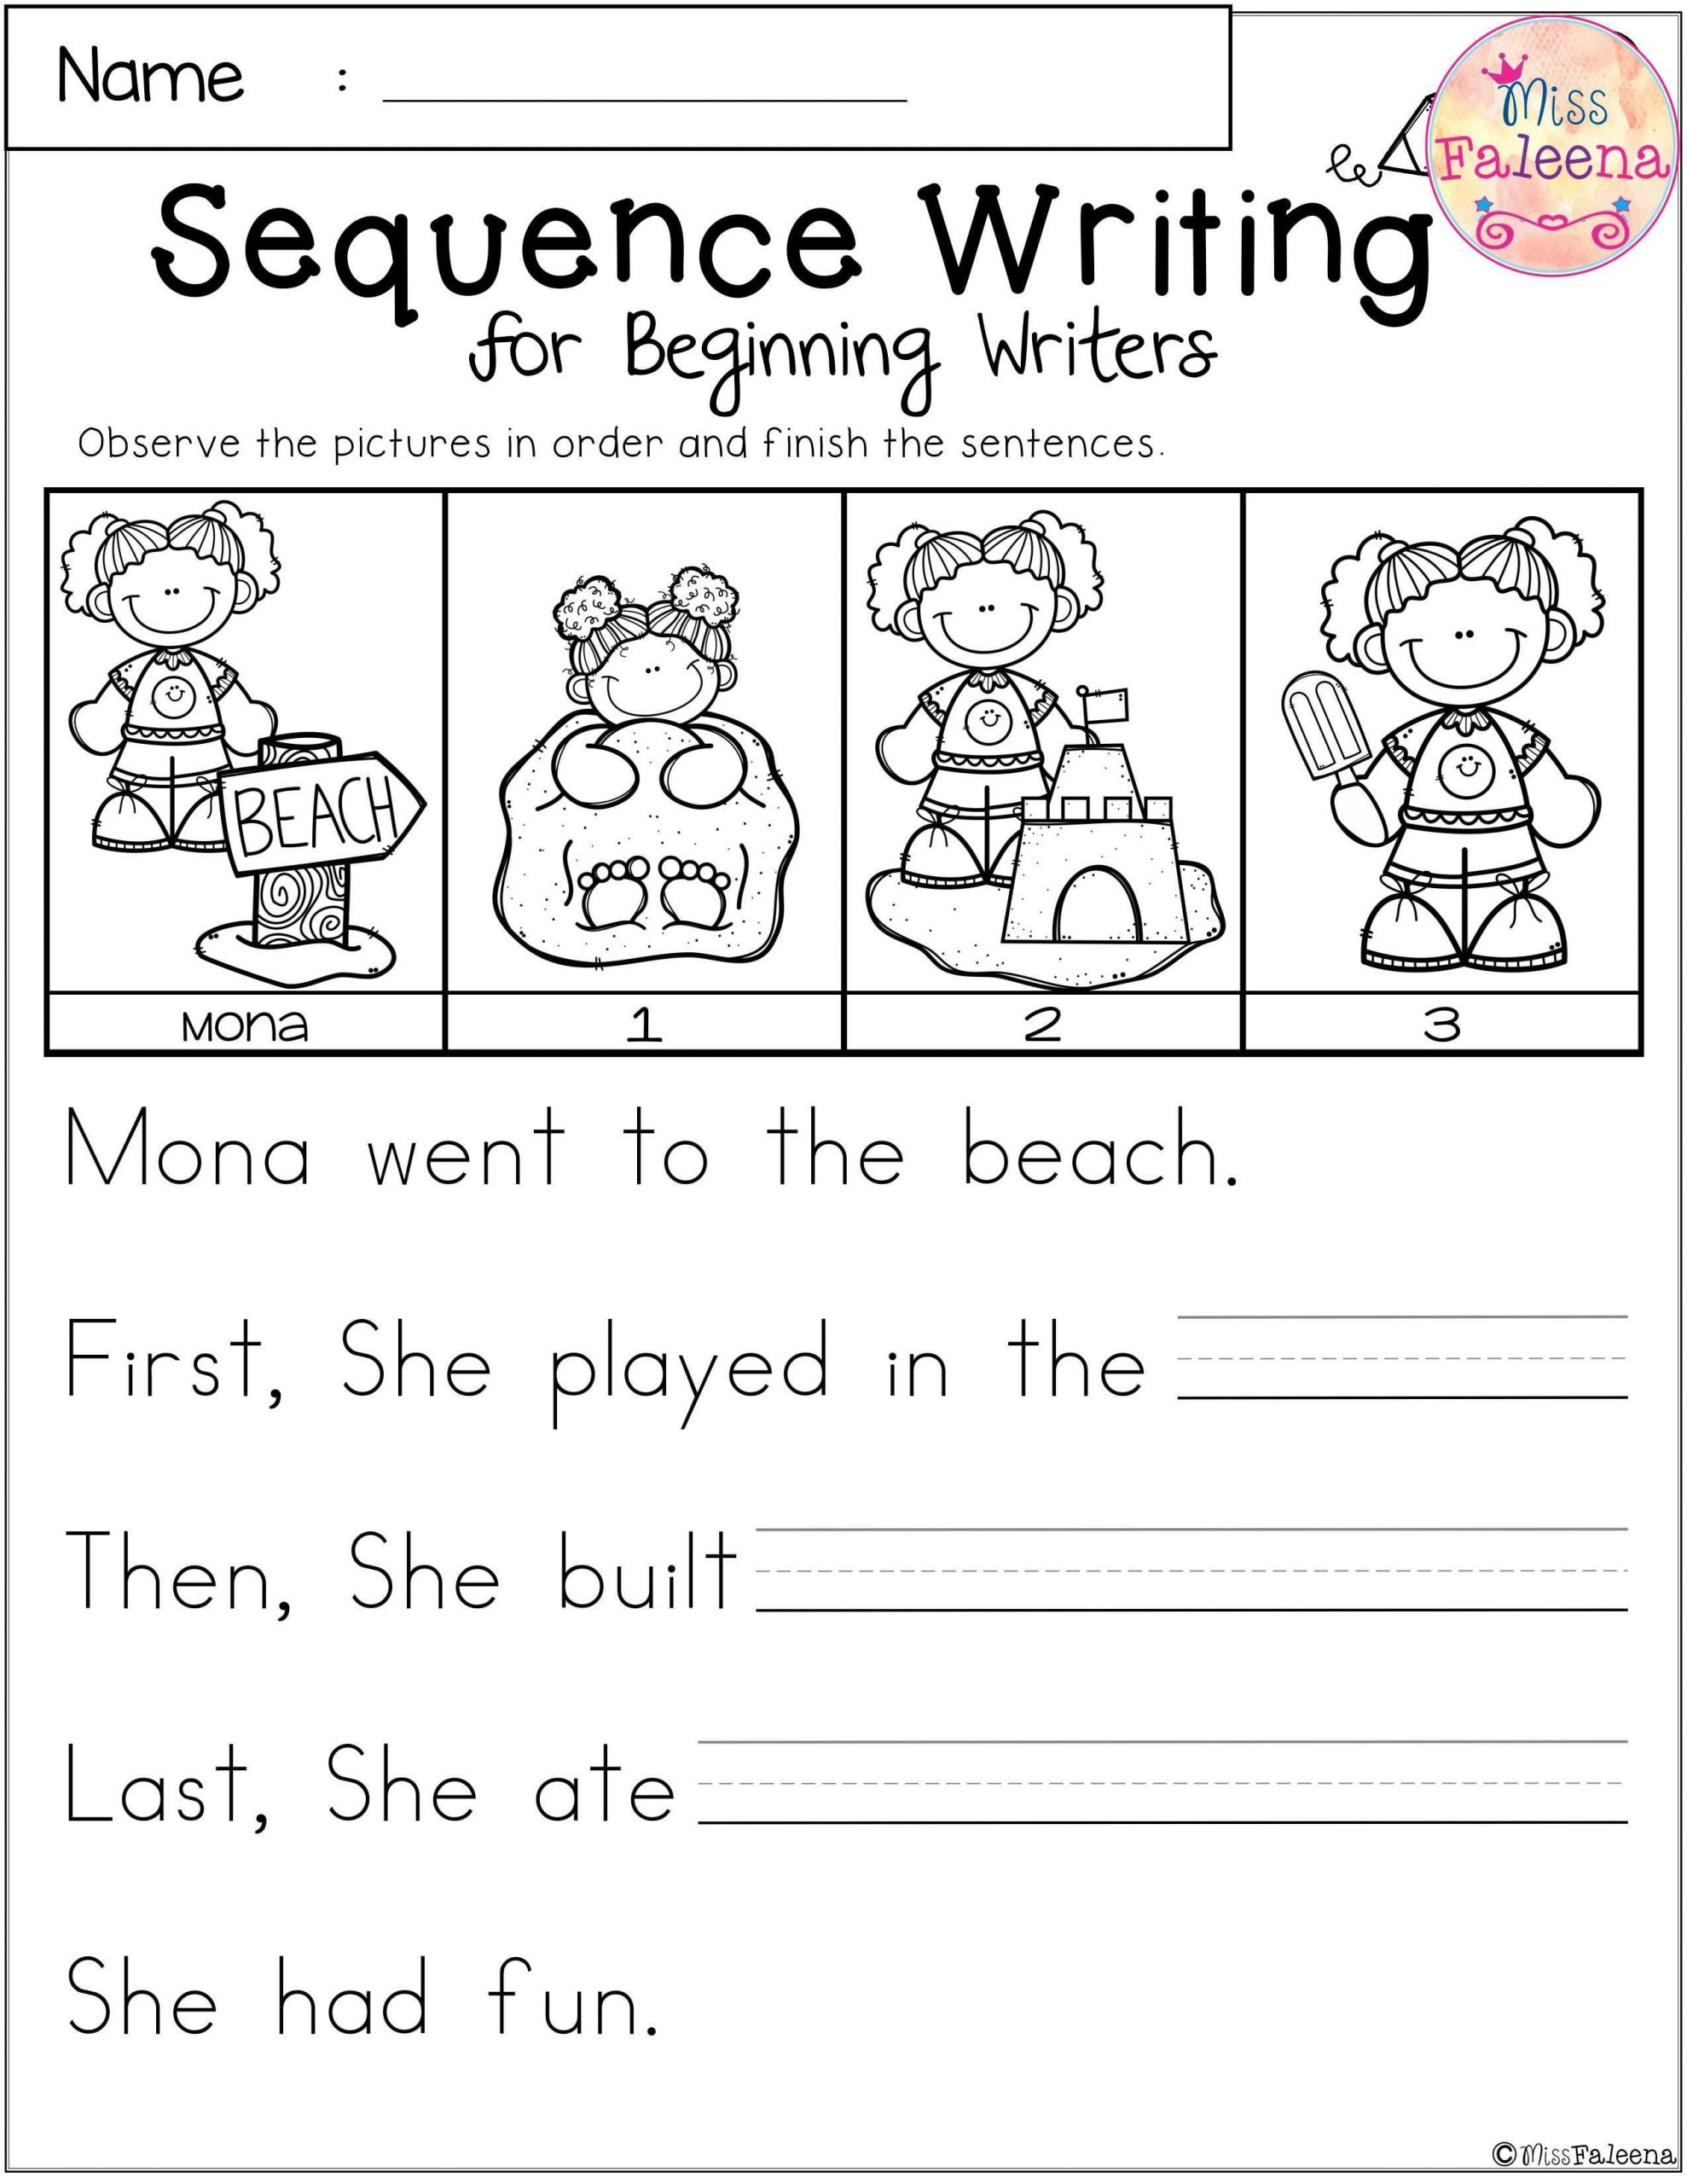 Sequencing Pictures Worksheet Free Sequence Writing for Beginning Writers